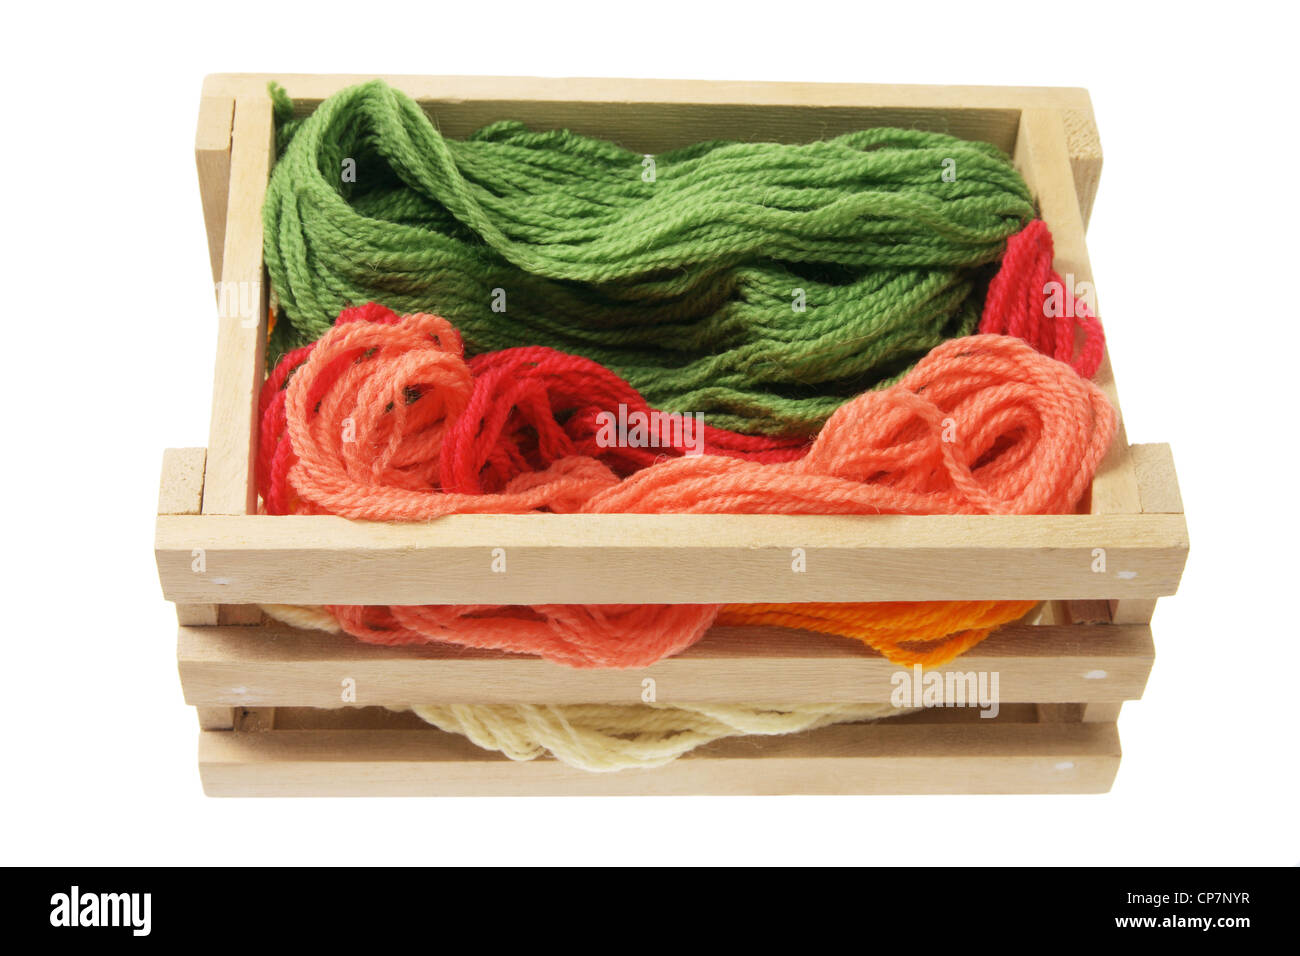 Yarn in Wooden Box on White Background - Stock Image